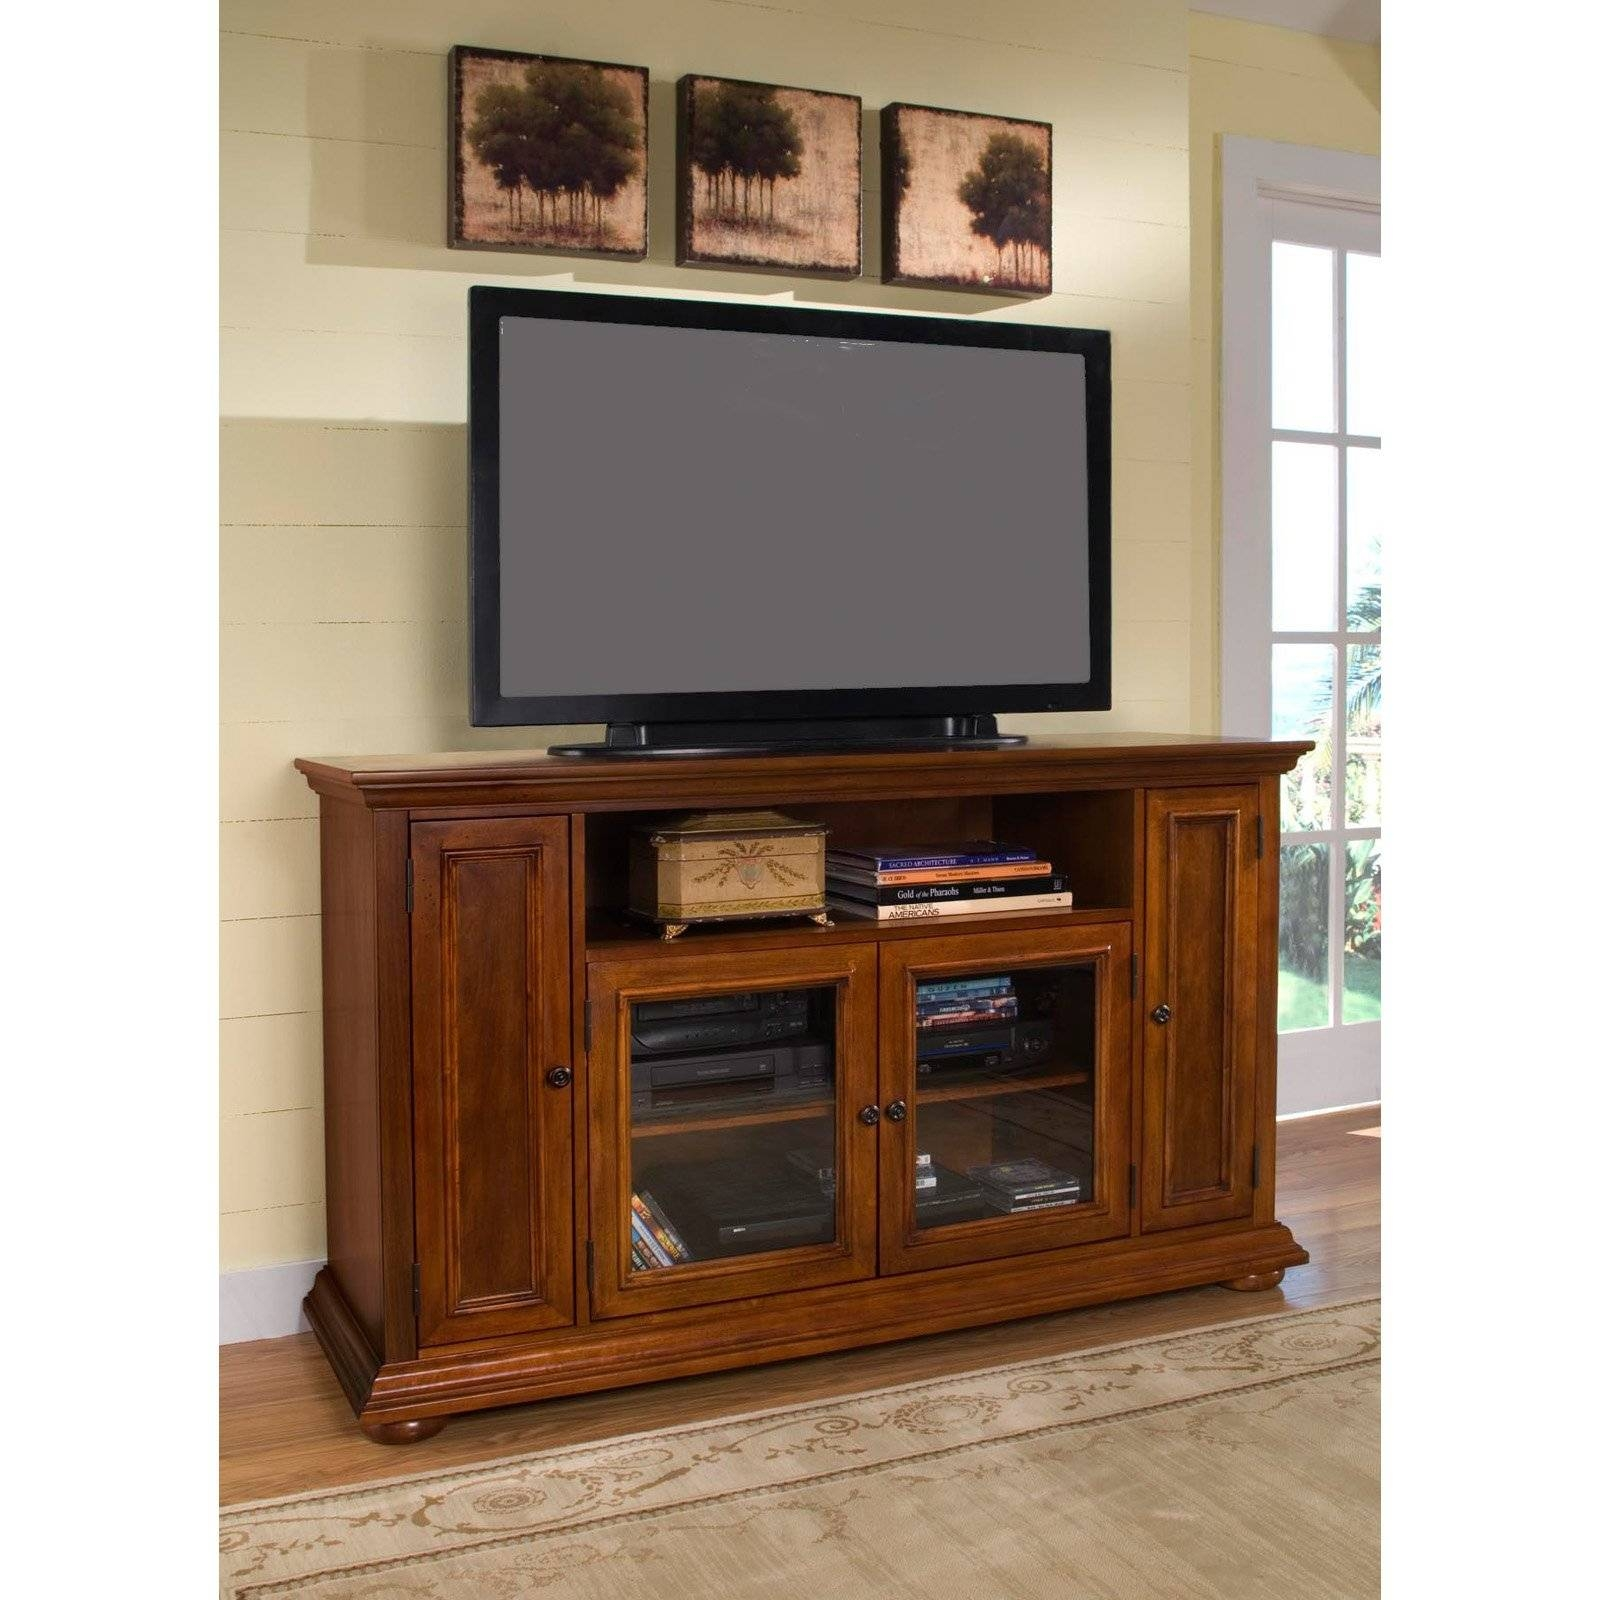 Oak Corner Tv Cabinets For Flat Screens | Memsaheb With Regard To Oak Tv Stands For Flat Screens (View 10 of 15)